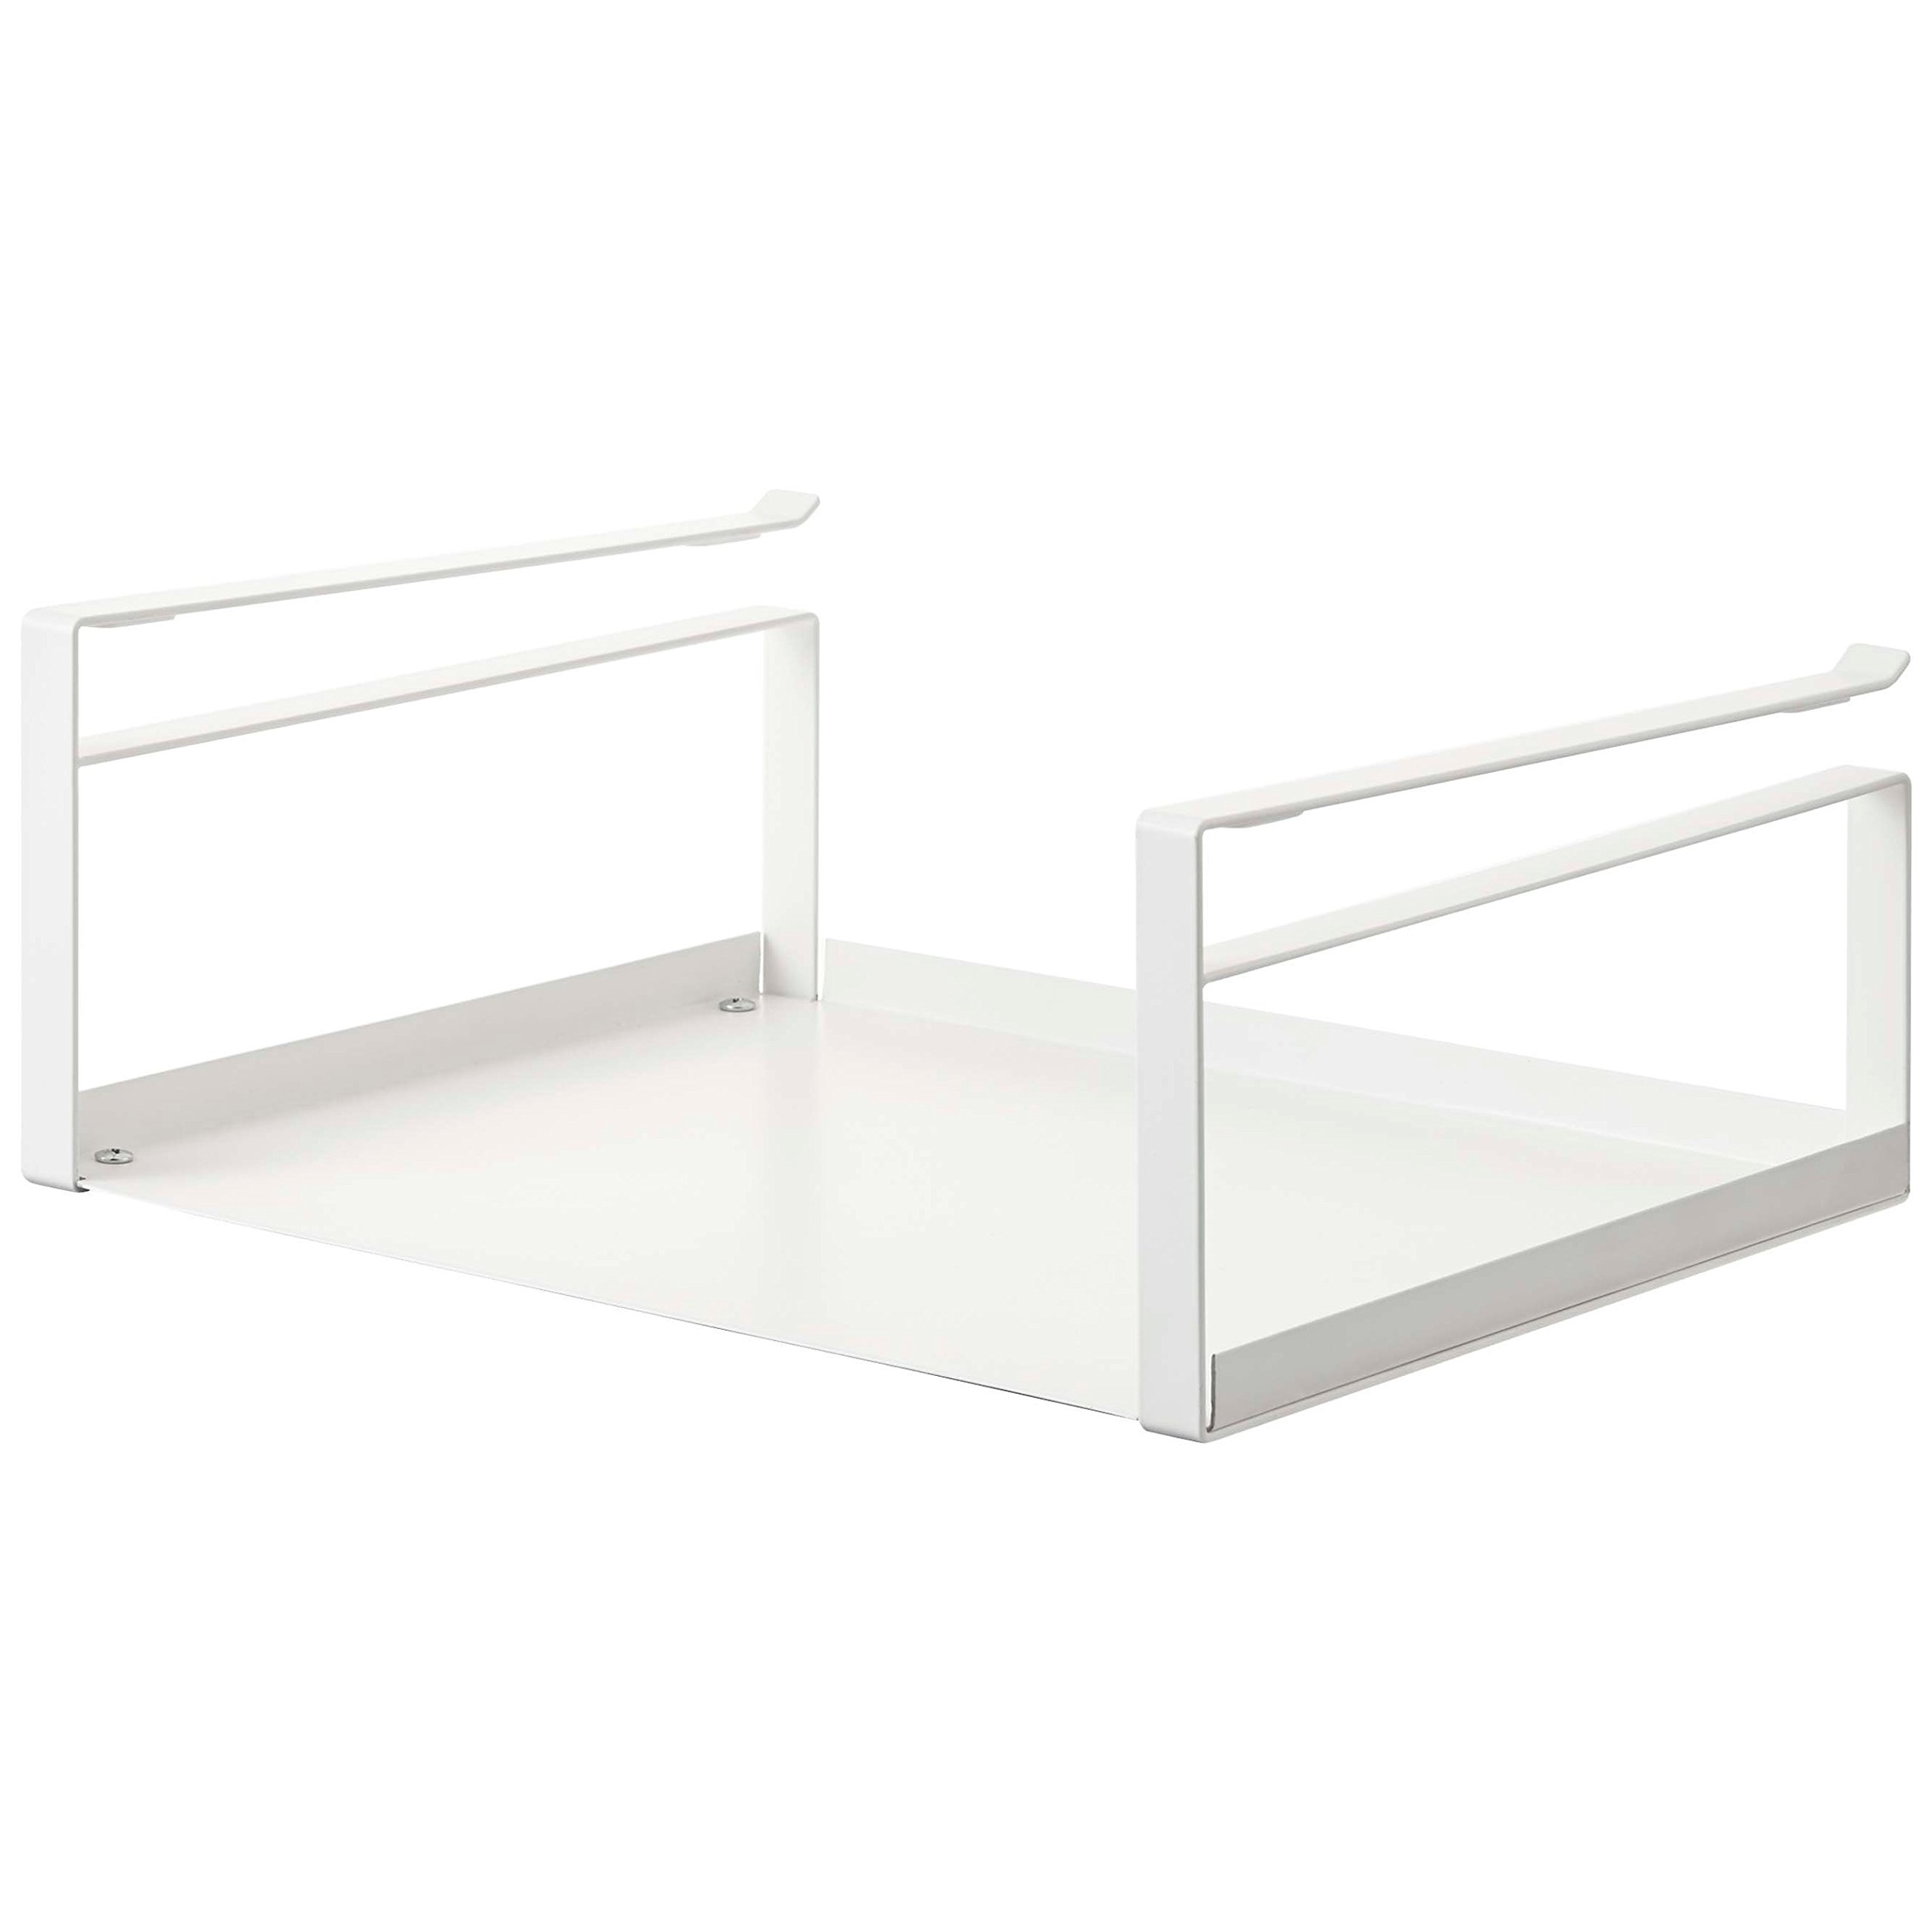 MattsGlobal Moderm Steel Tool Caddy Under Cabinet Storage Rack (White)